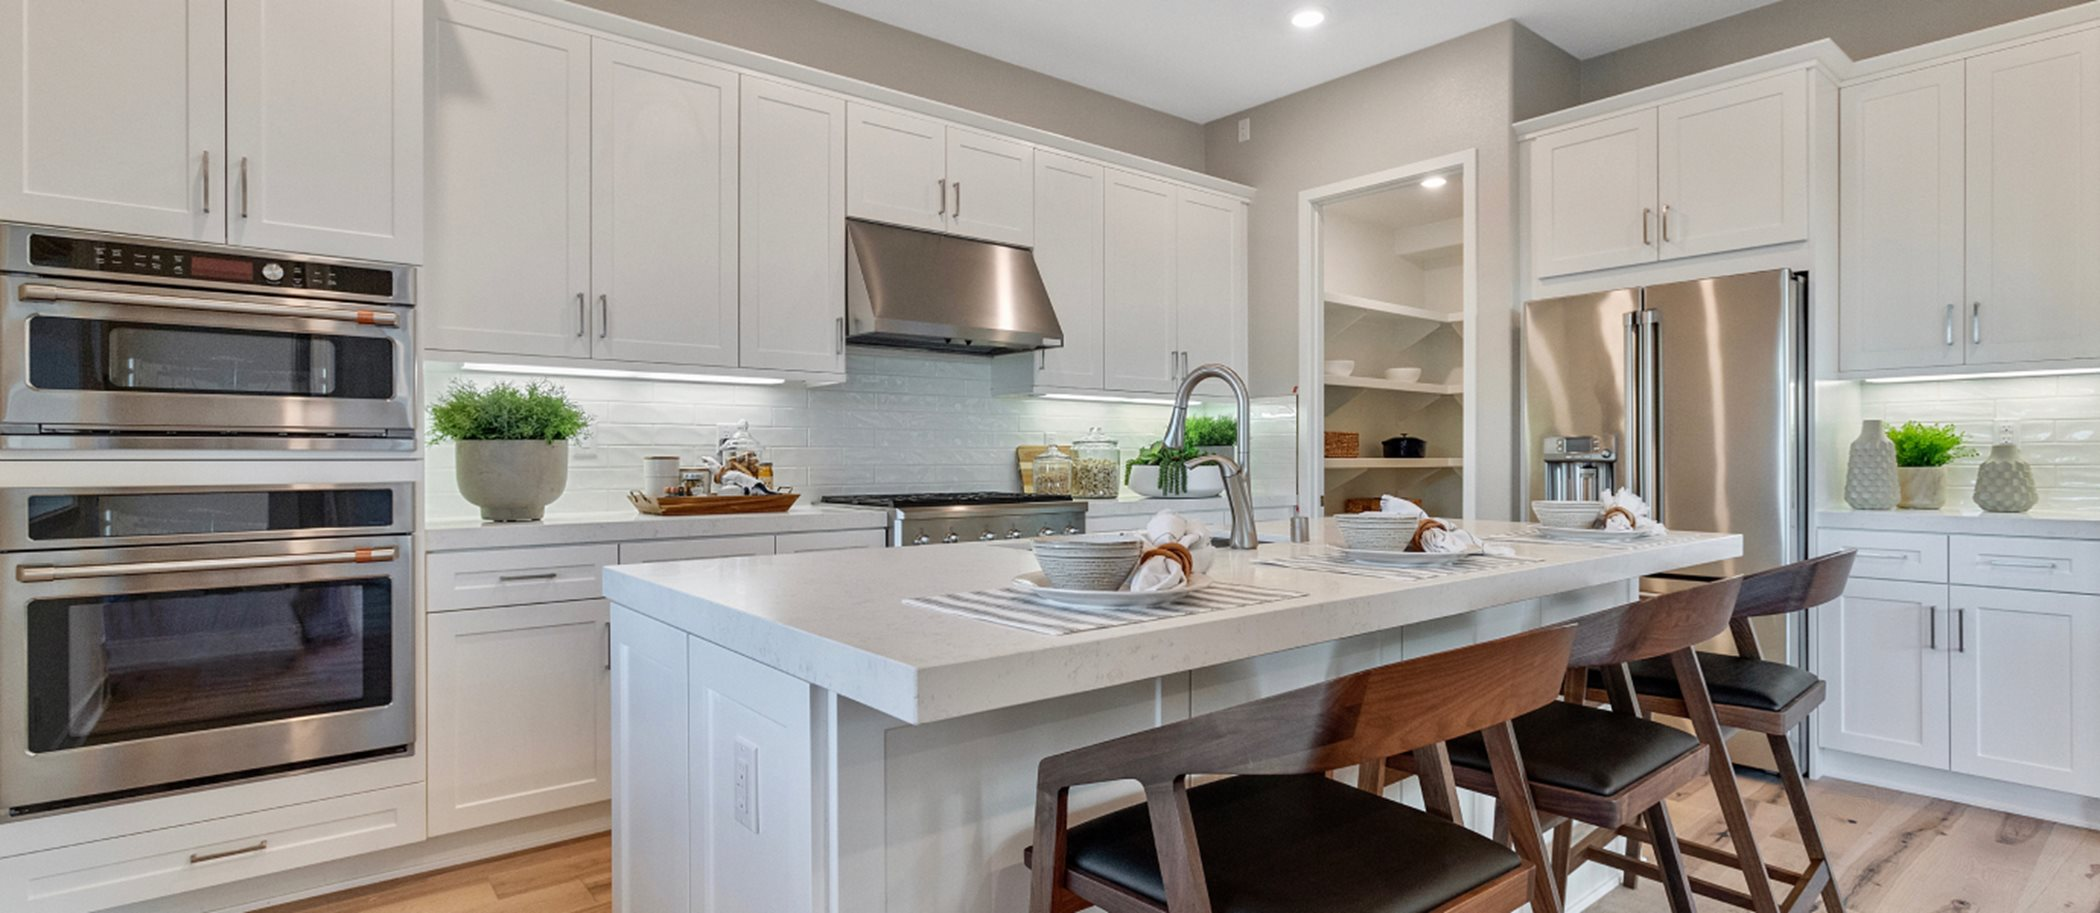 Great Park Neighborhoods Almeria at Rise Residence 1 Kitchen